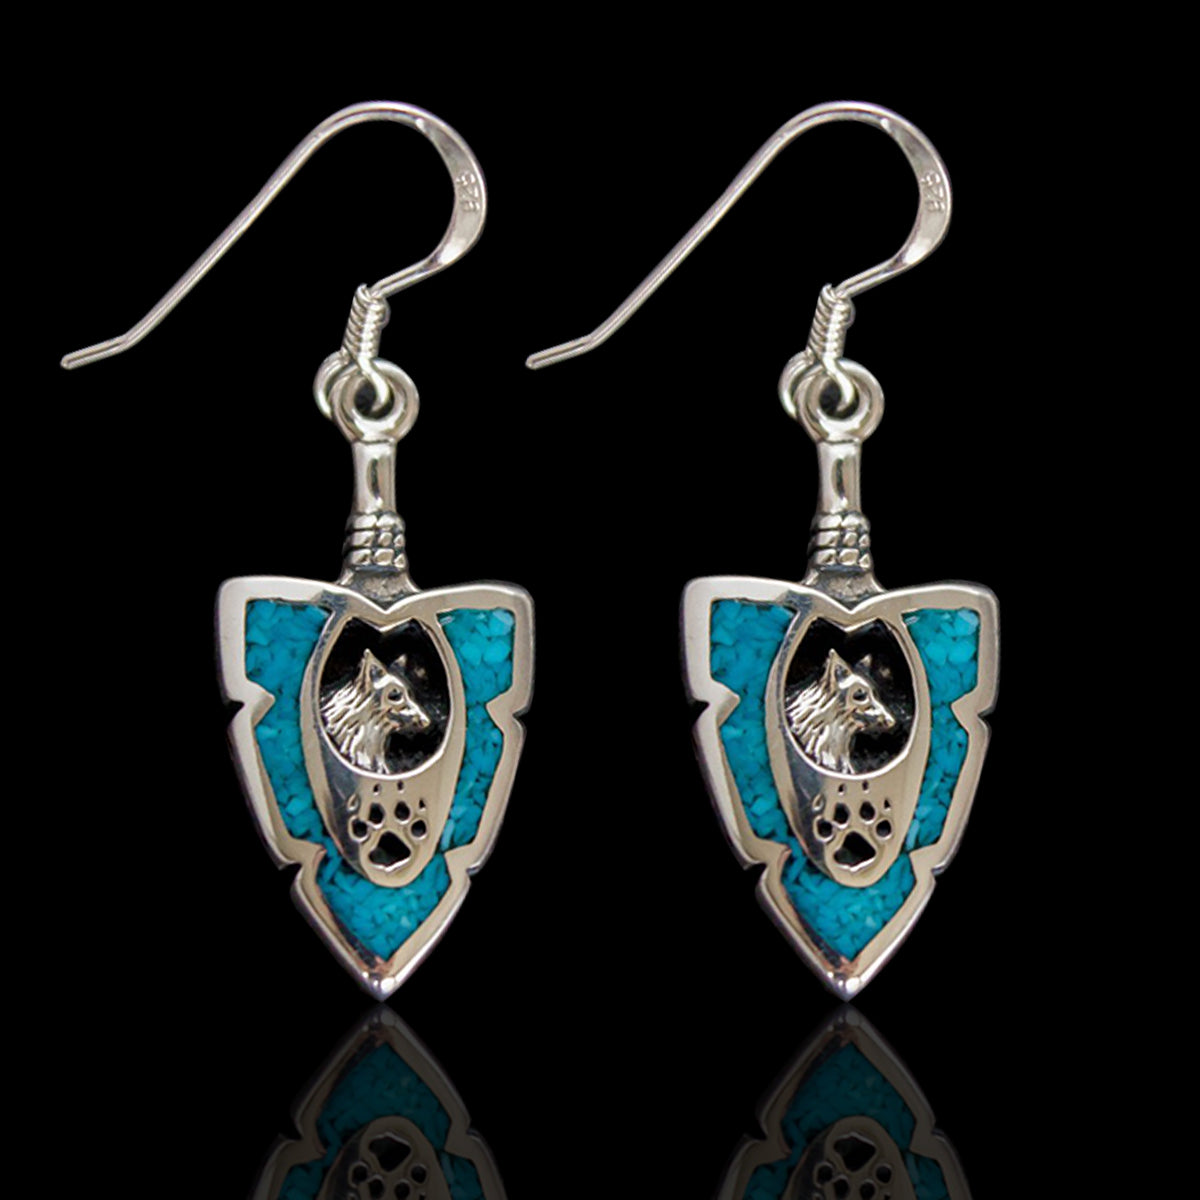 Arrow-Shaped Wolf Earring in Sterling Silver and Turquoise